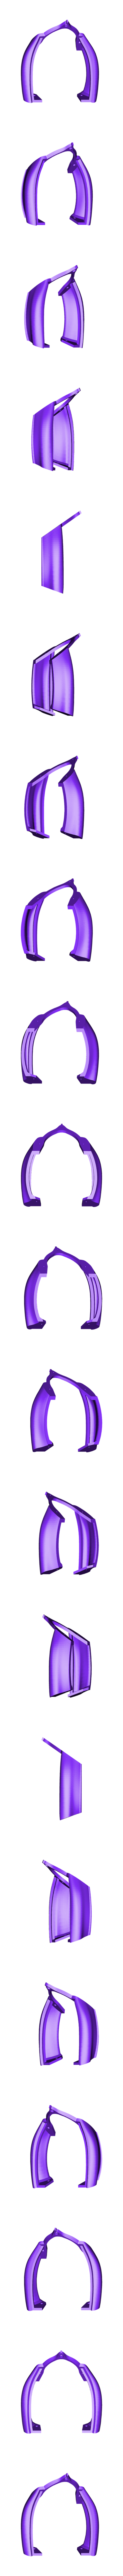 OpenRC_F1_250scaled_-_Component3-1.STL Download free STL file OpenRC F1 250% scaled • Template to 3D print, colorFabb